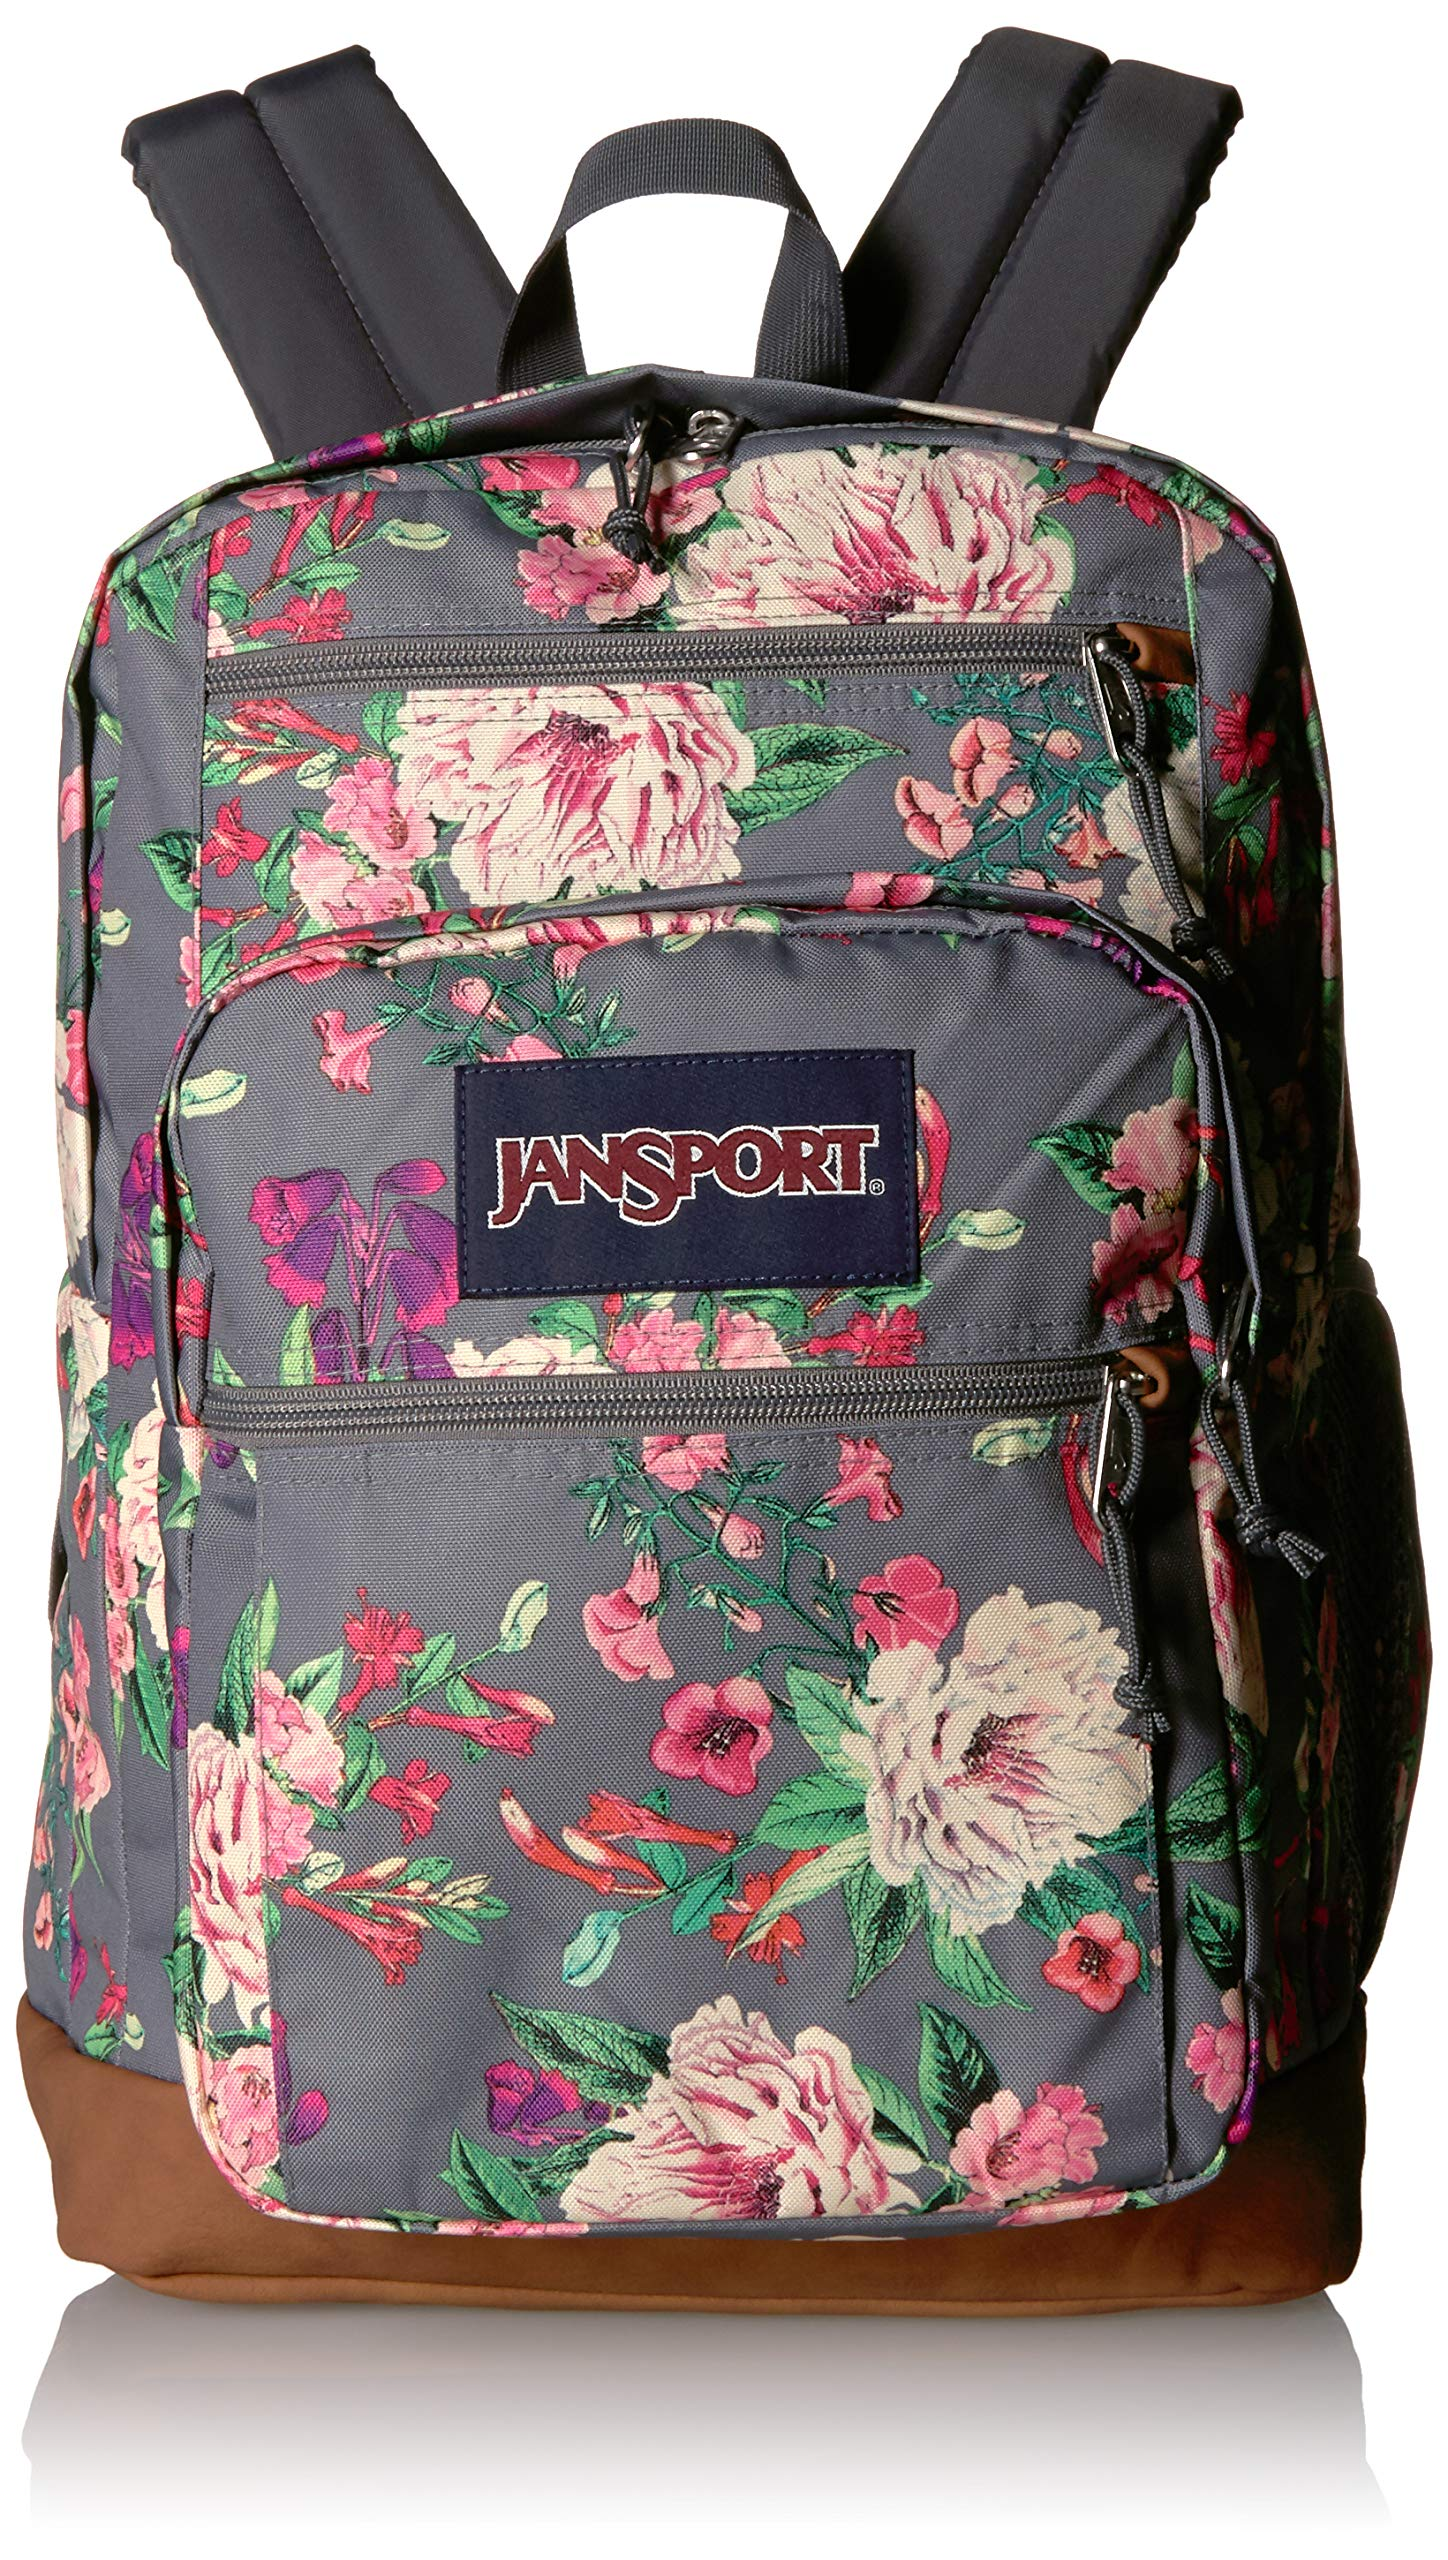 JanSport Cool Student 15-inch Laptop Backpack - School Bag, Grey Bouquet by JanSport